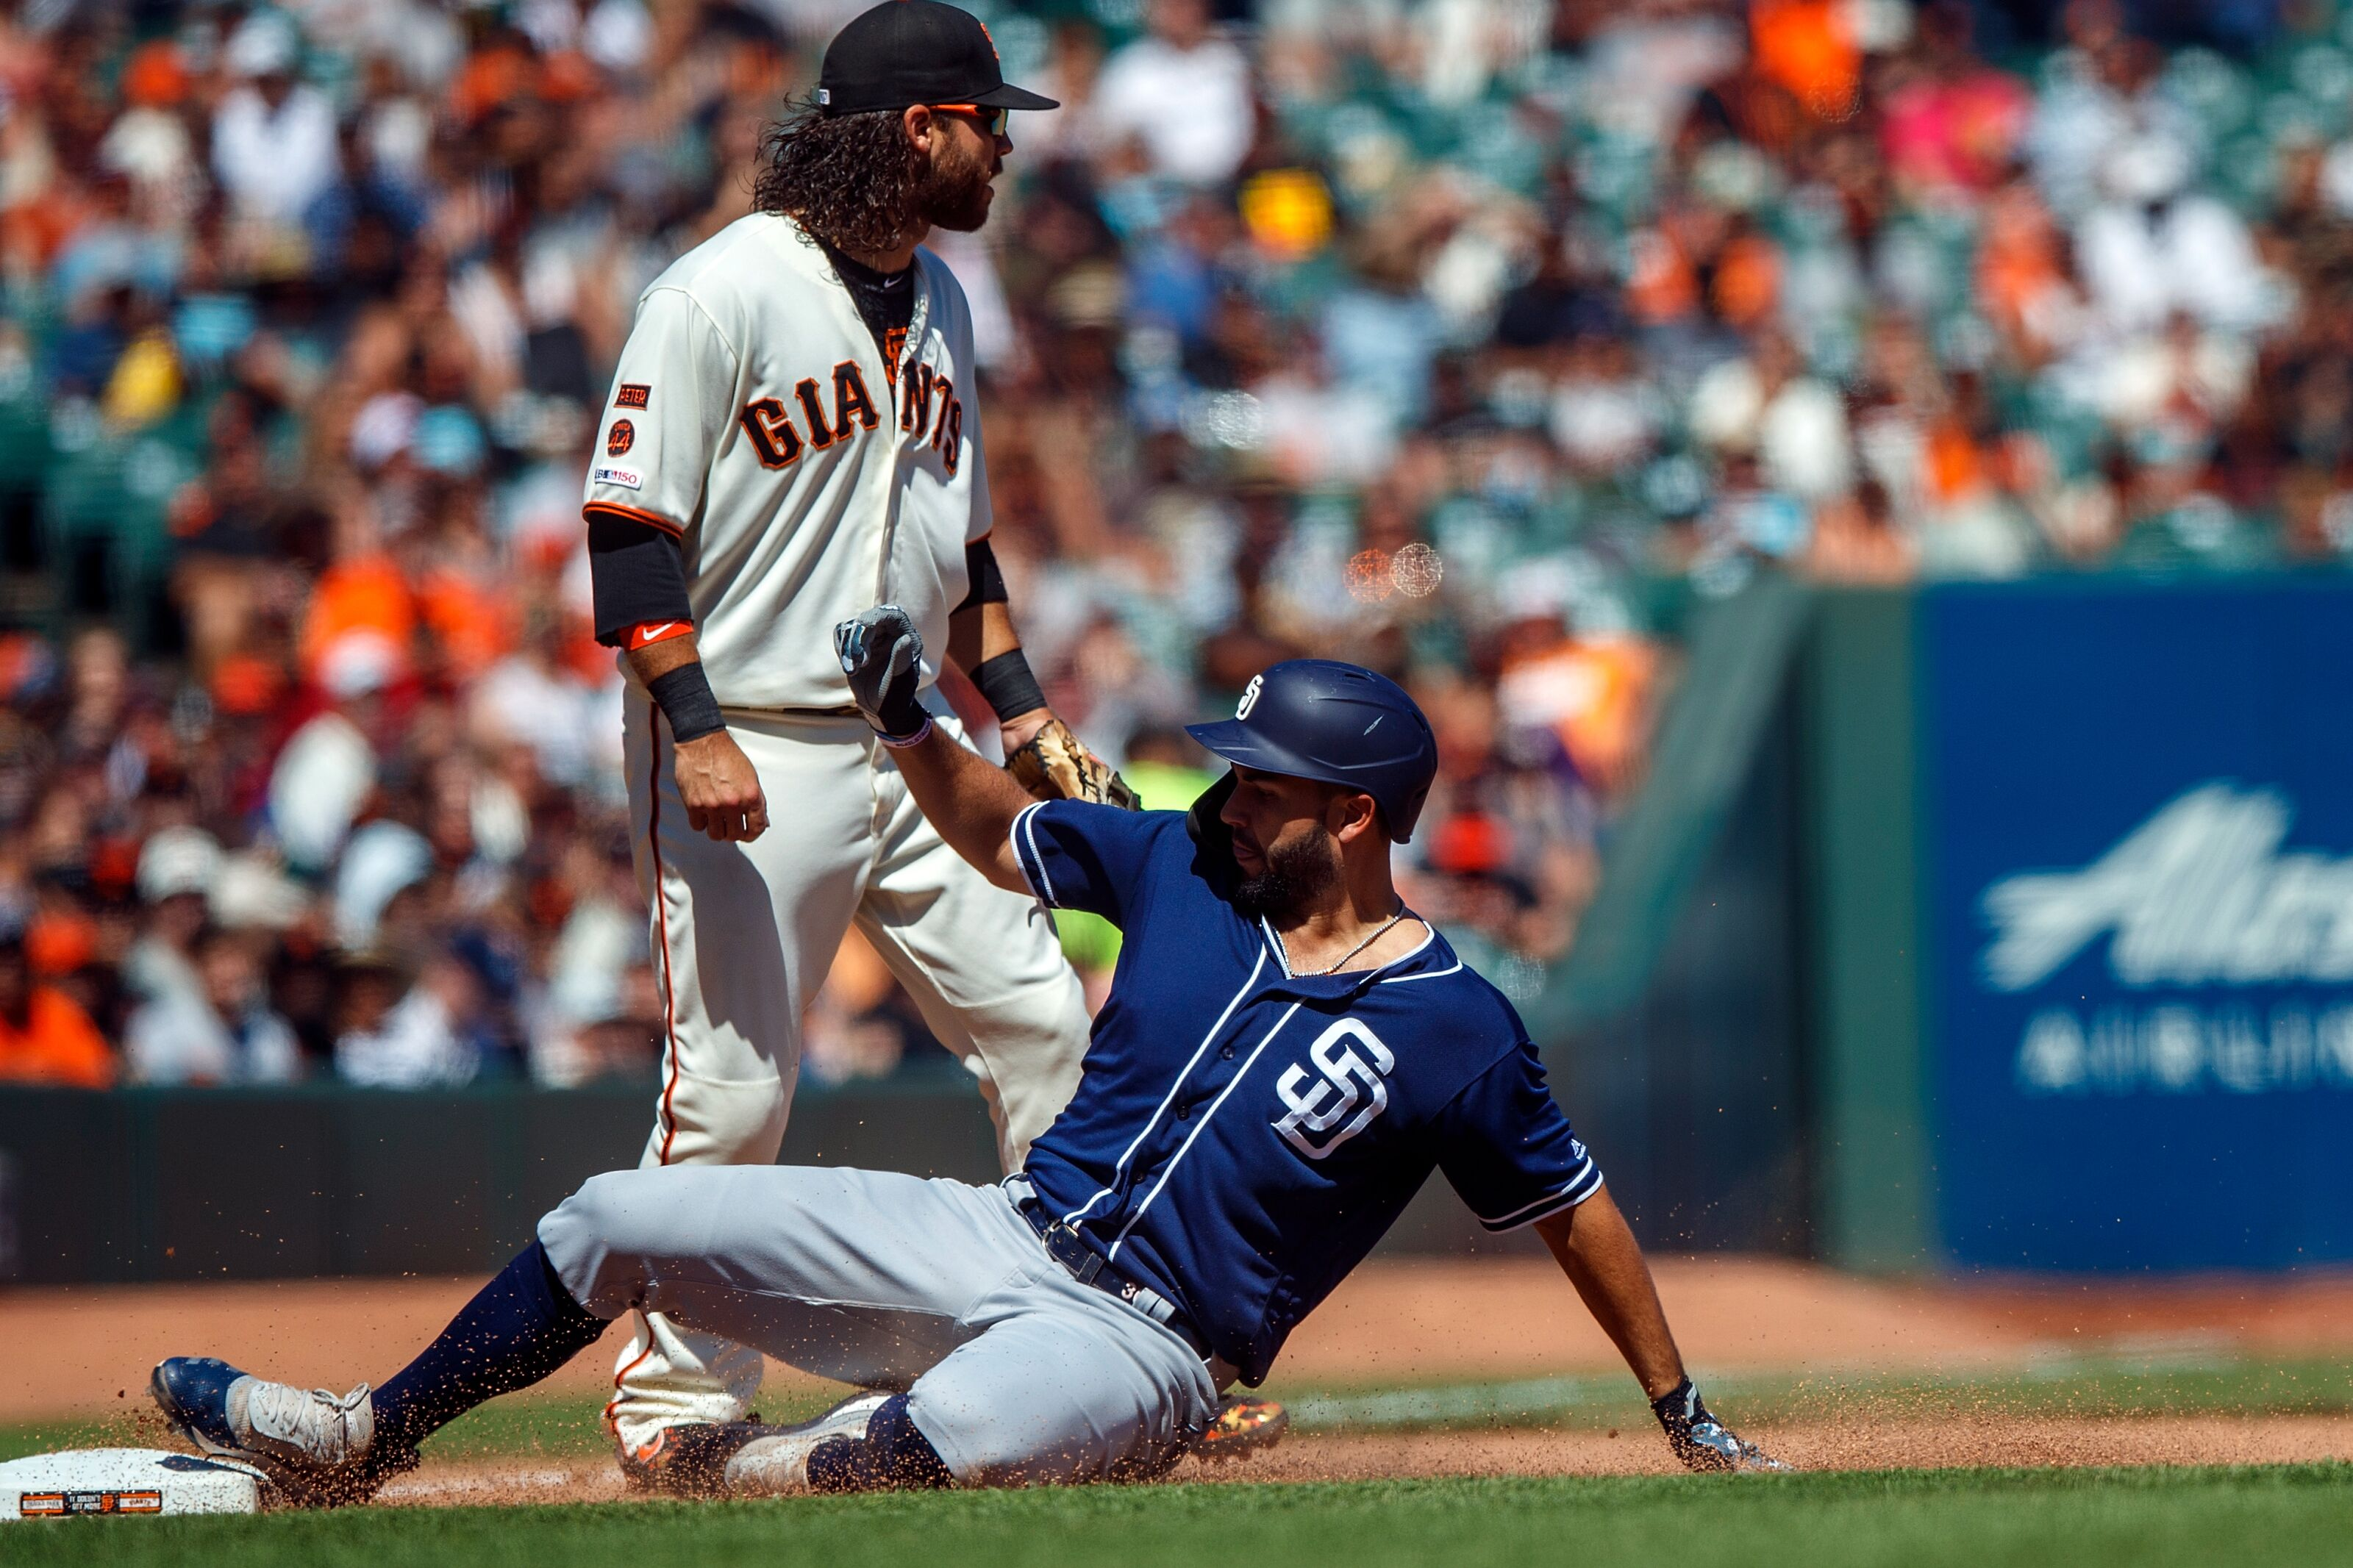 Padres: Offseason update on NL West competition — San Francisco Giants